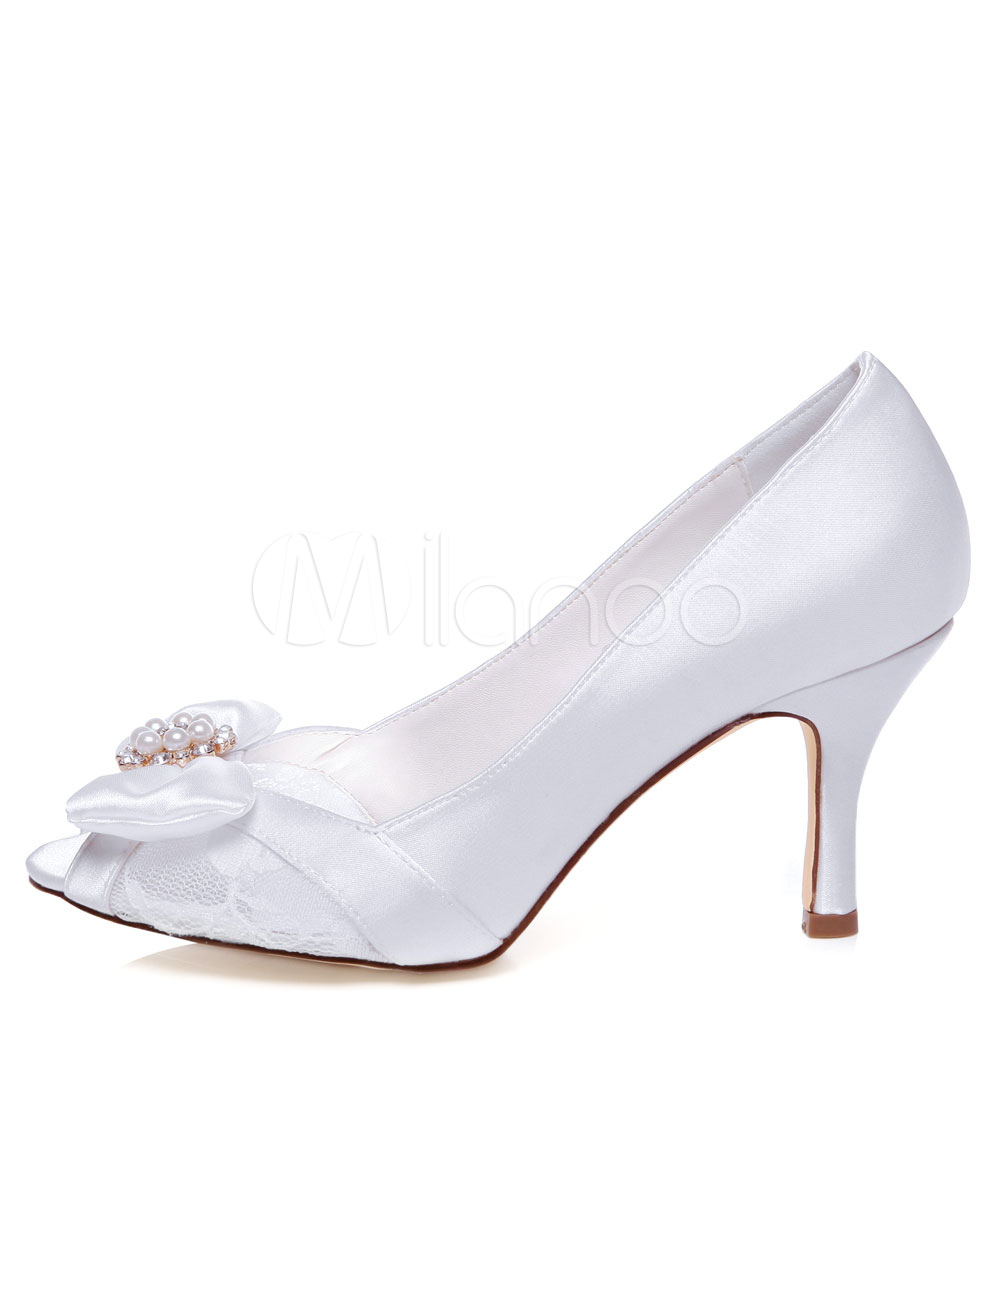 White Bridal Pumps Peep Toe Pearls Bows Satin Sandals